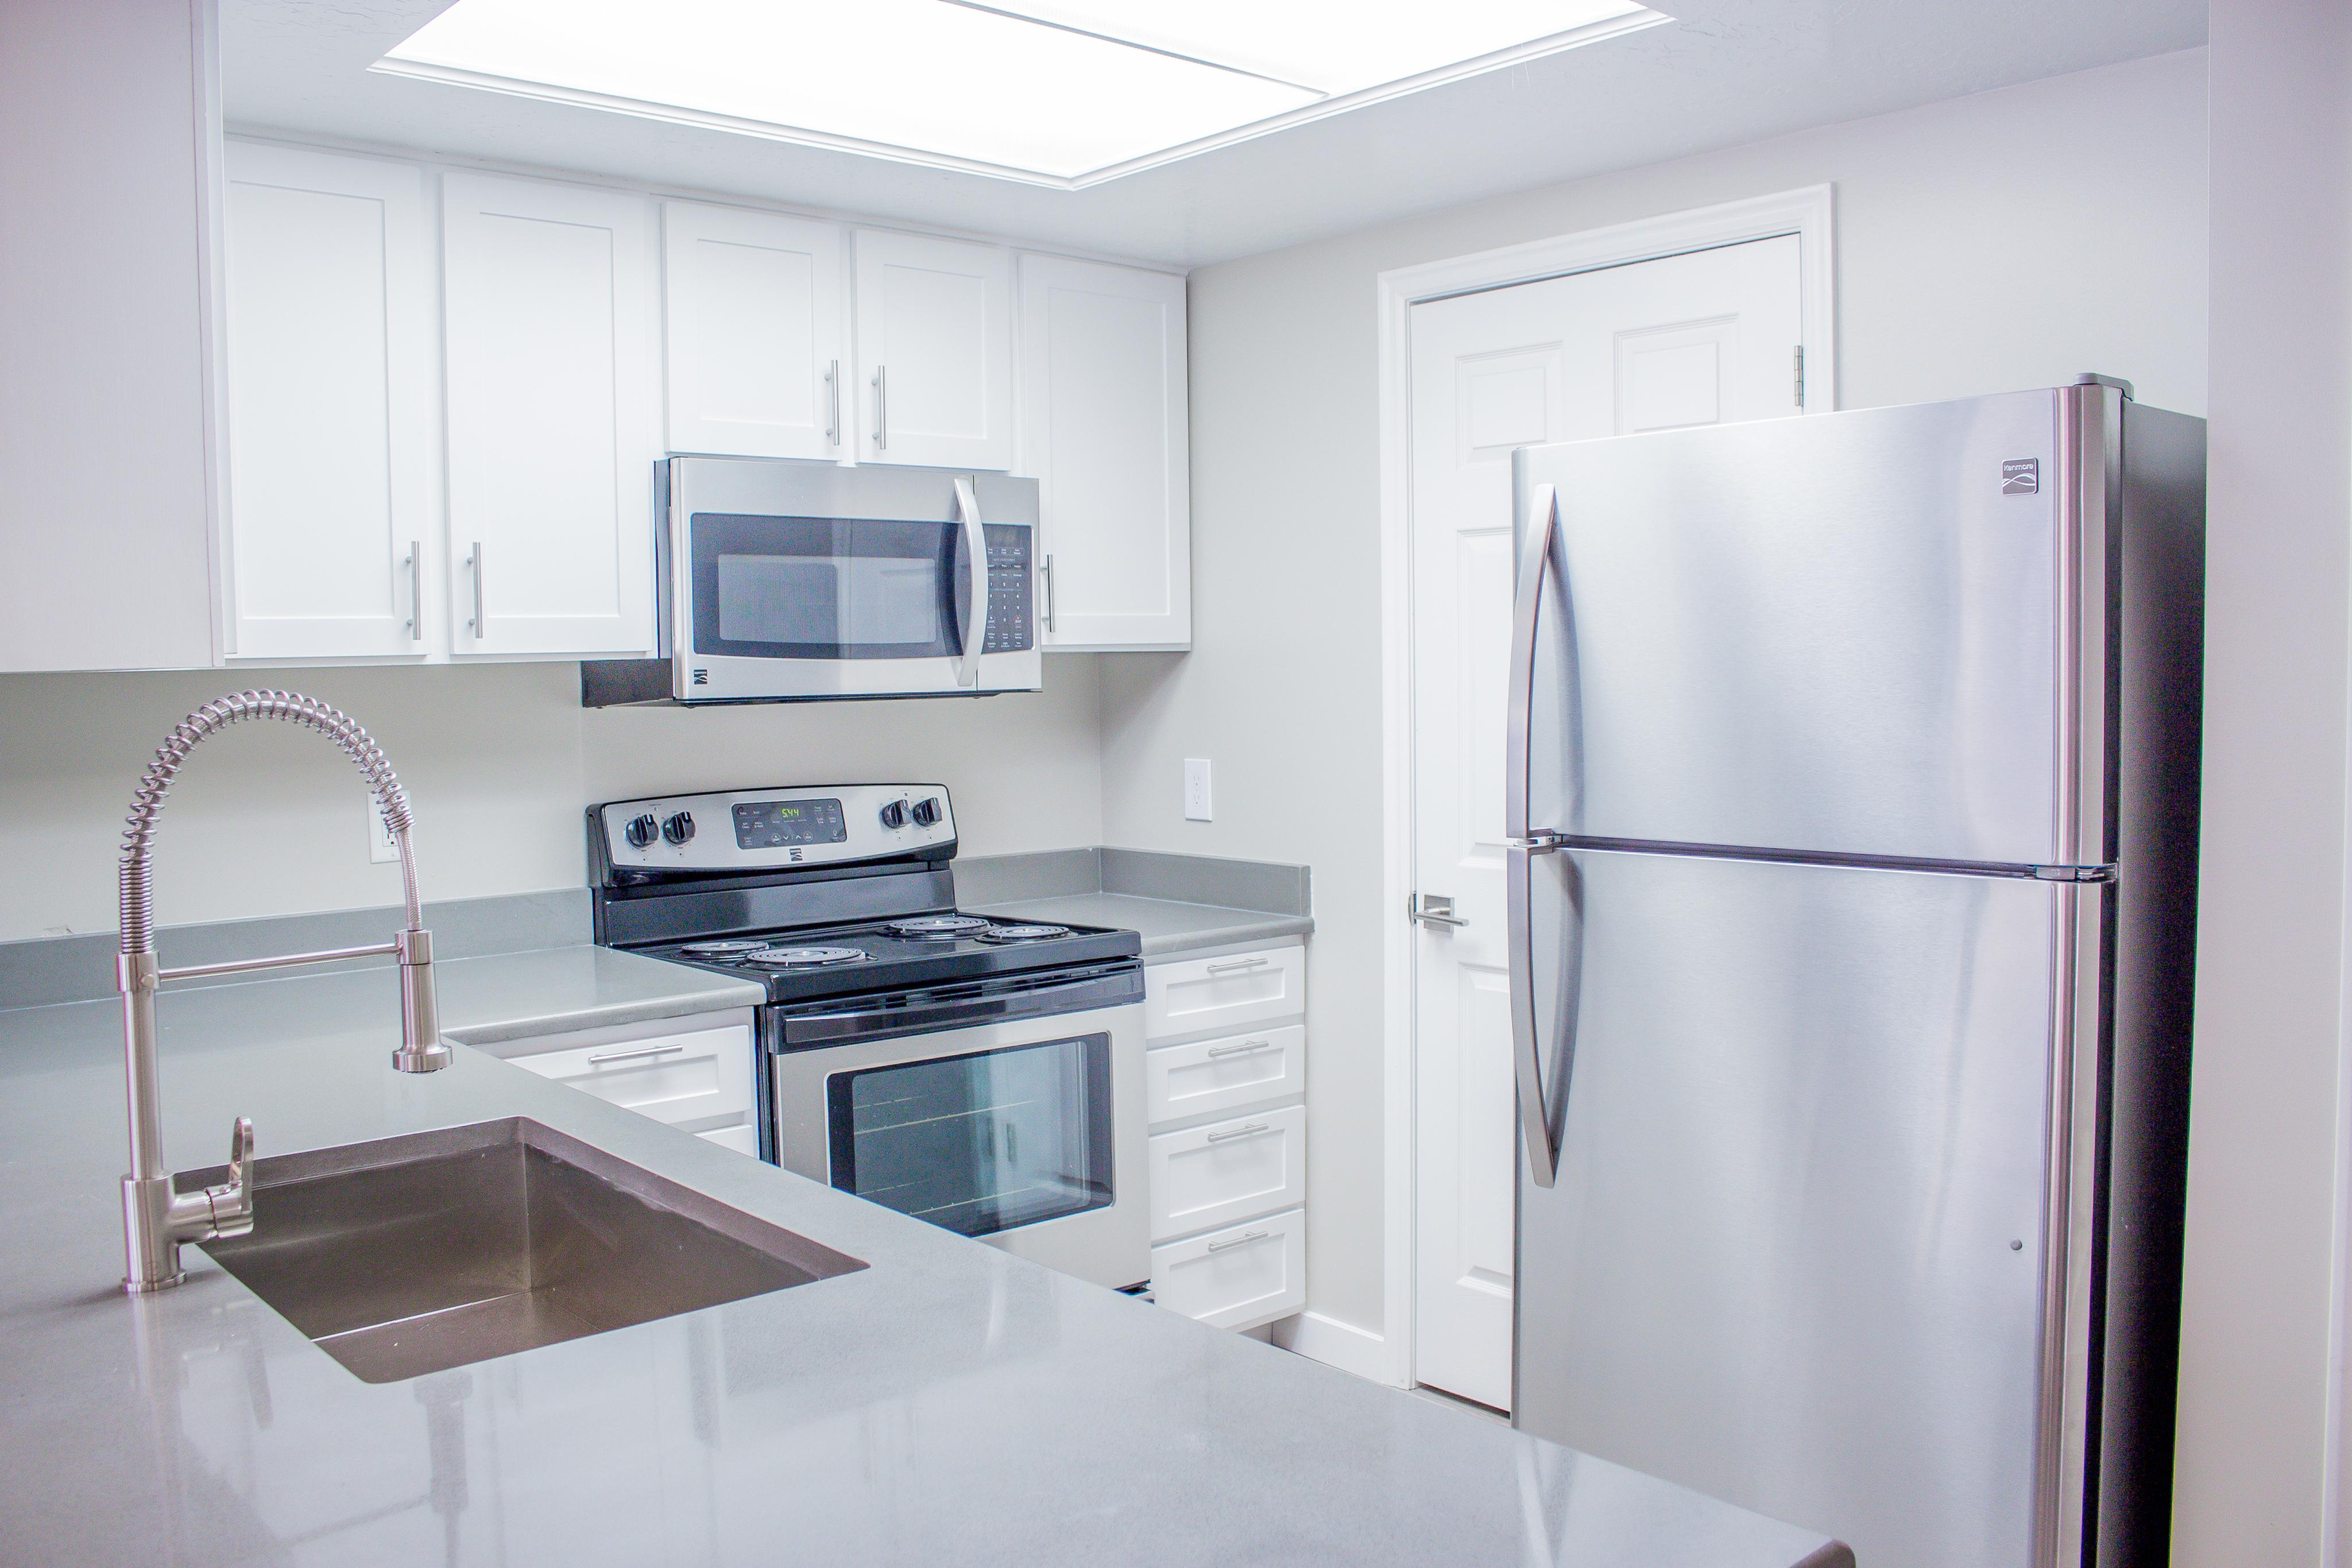 Energy Efficient Appliances at Edgewood Apartments in Cottonwood Heights, UT